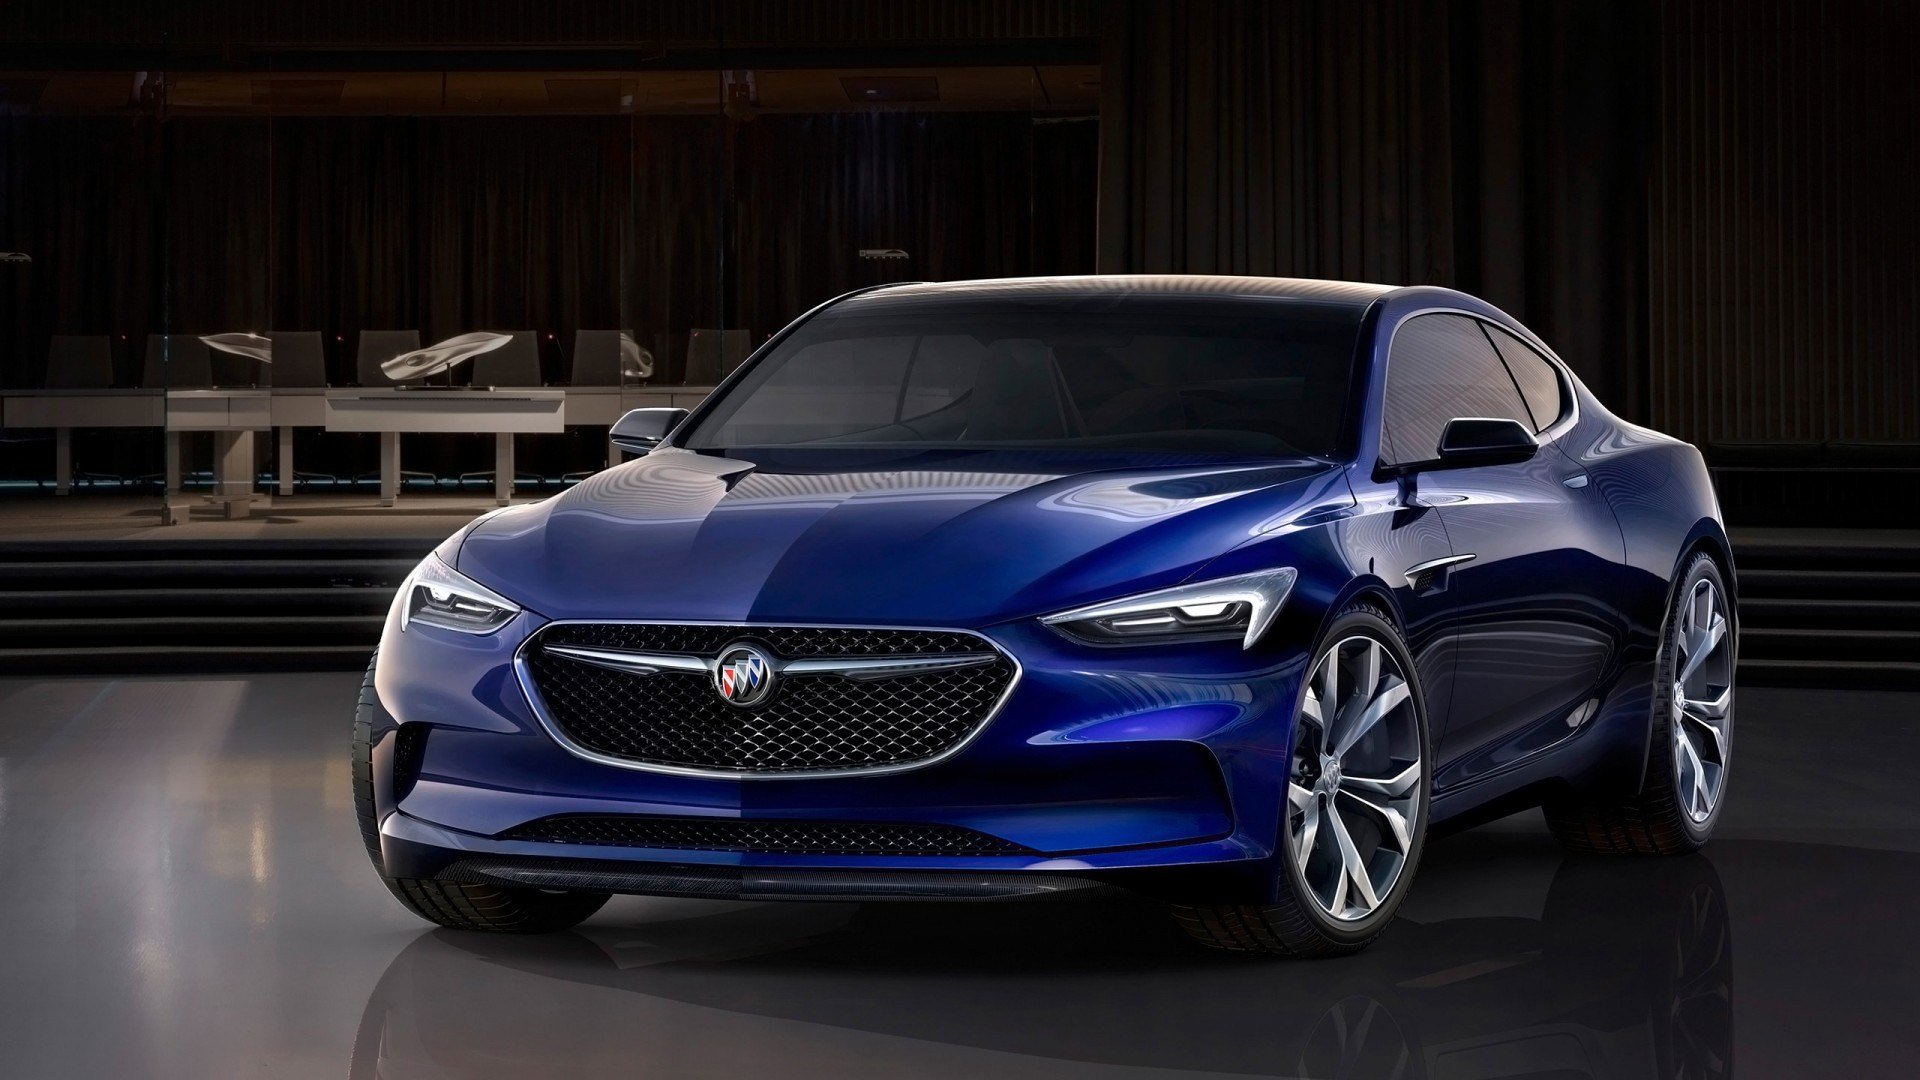 Latest 2016 Buick Avista Concept 3 Wallpaper Hd Car Wallpapers Free Download